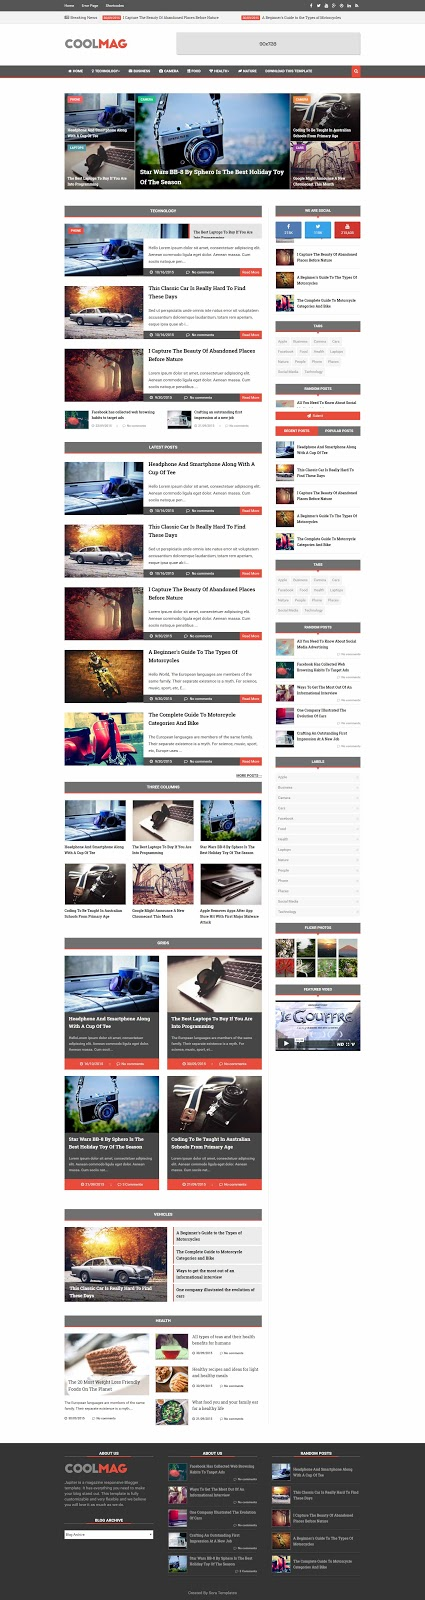 Blogger Theme Demo Image